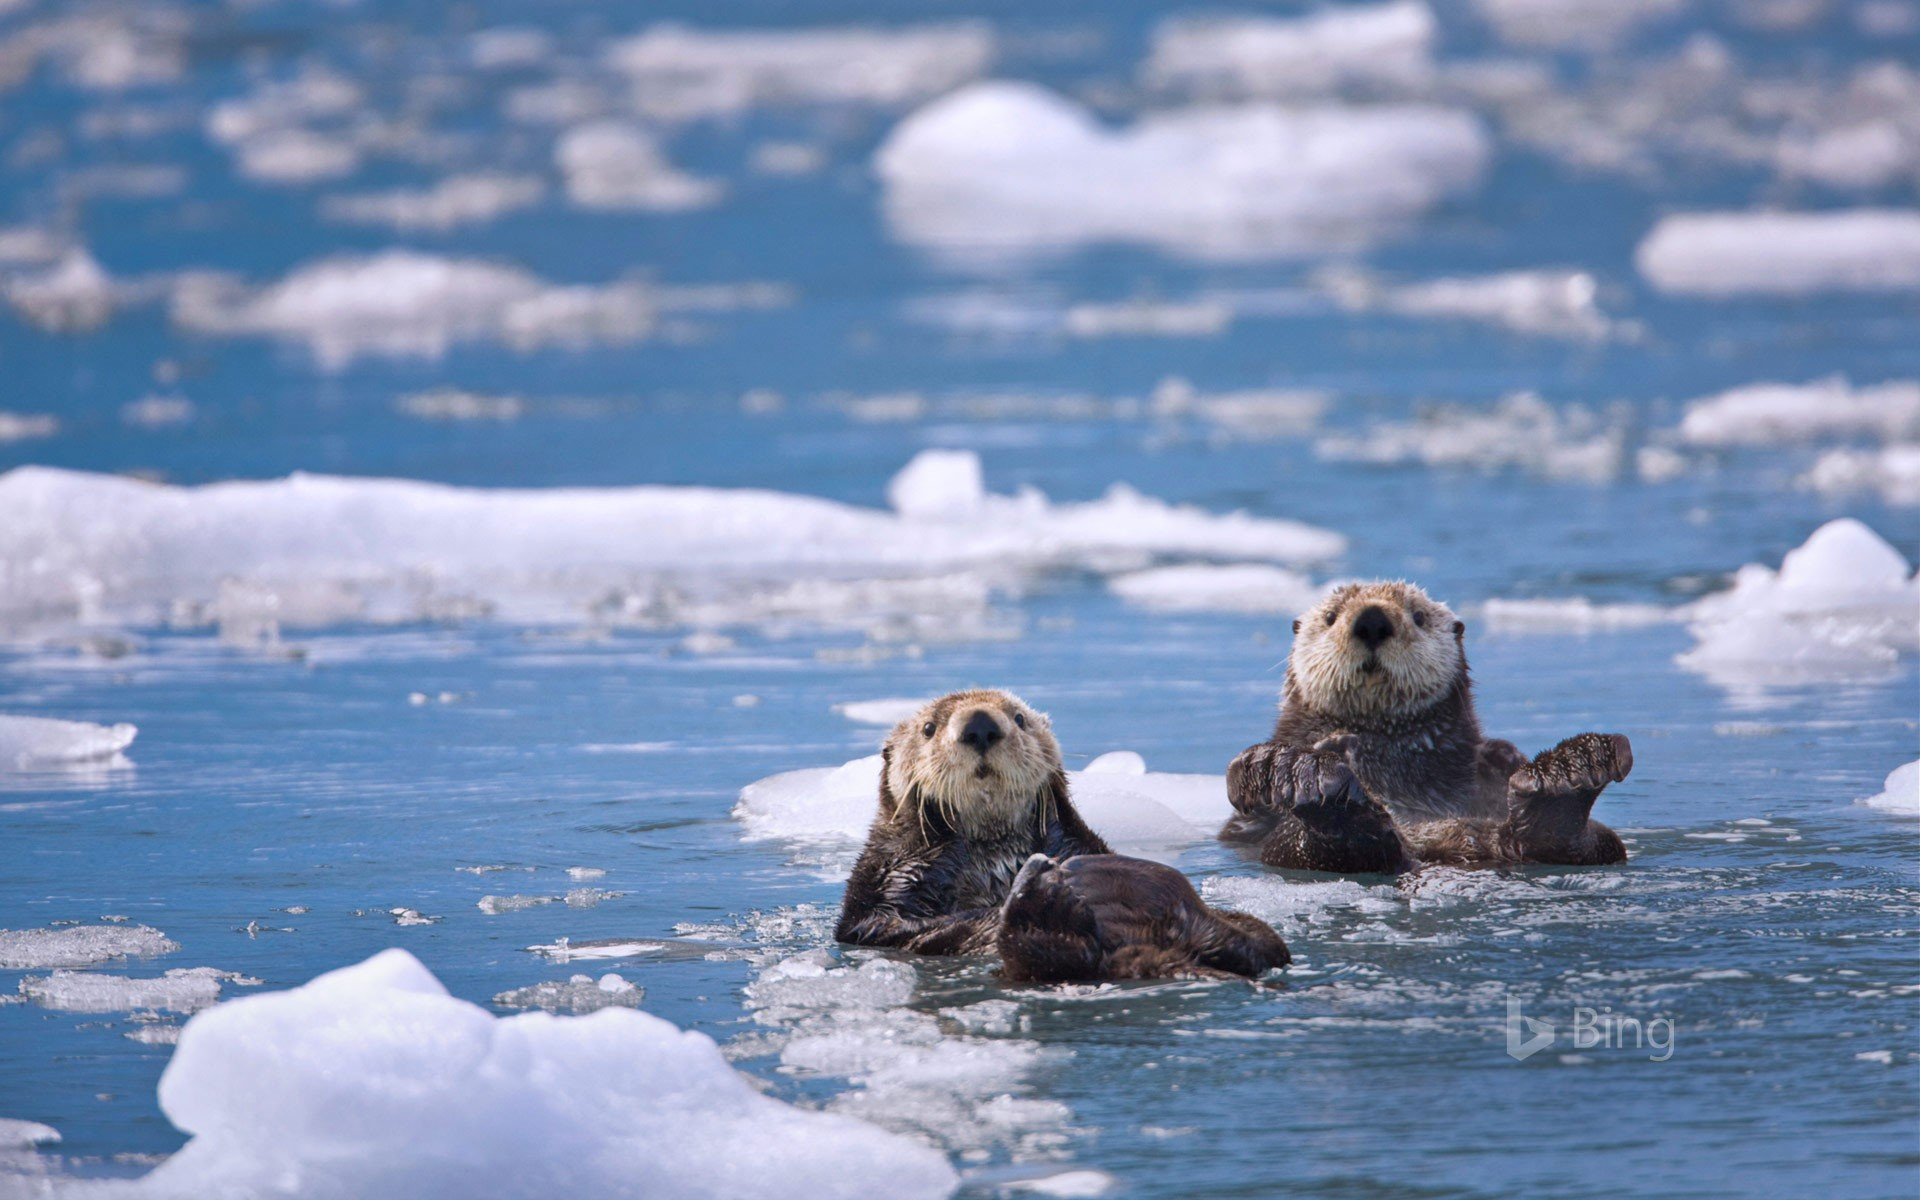 Sea otters in Prince William Sound, Alaska